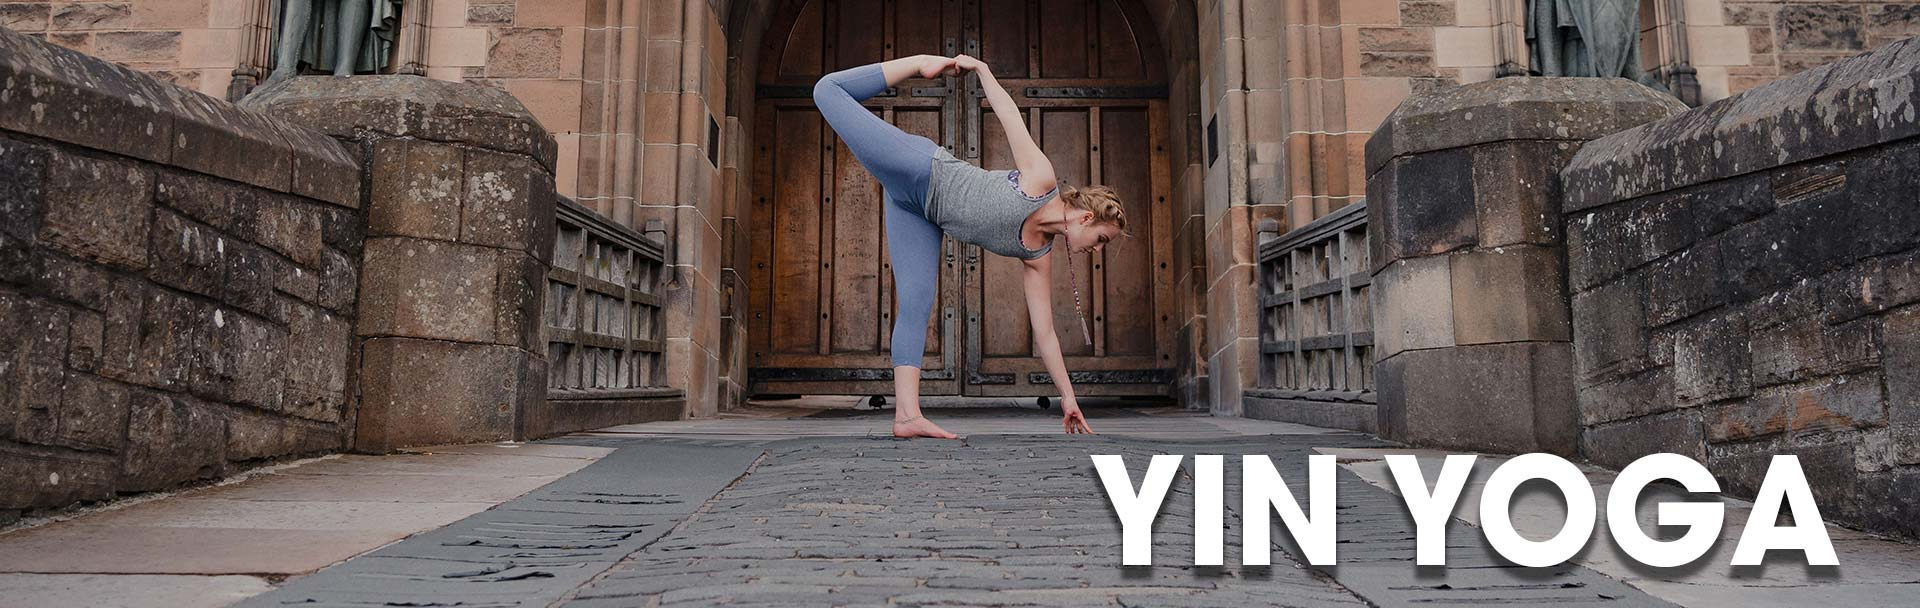 sophie obrien teaches yin yoga at the arthur conan doyle centre